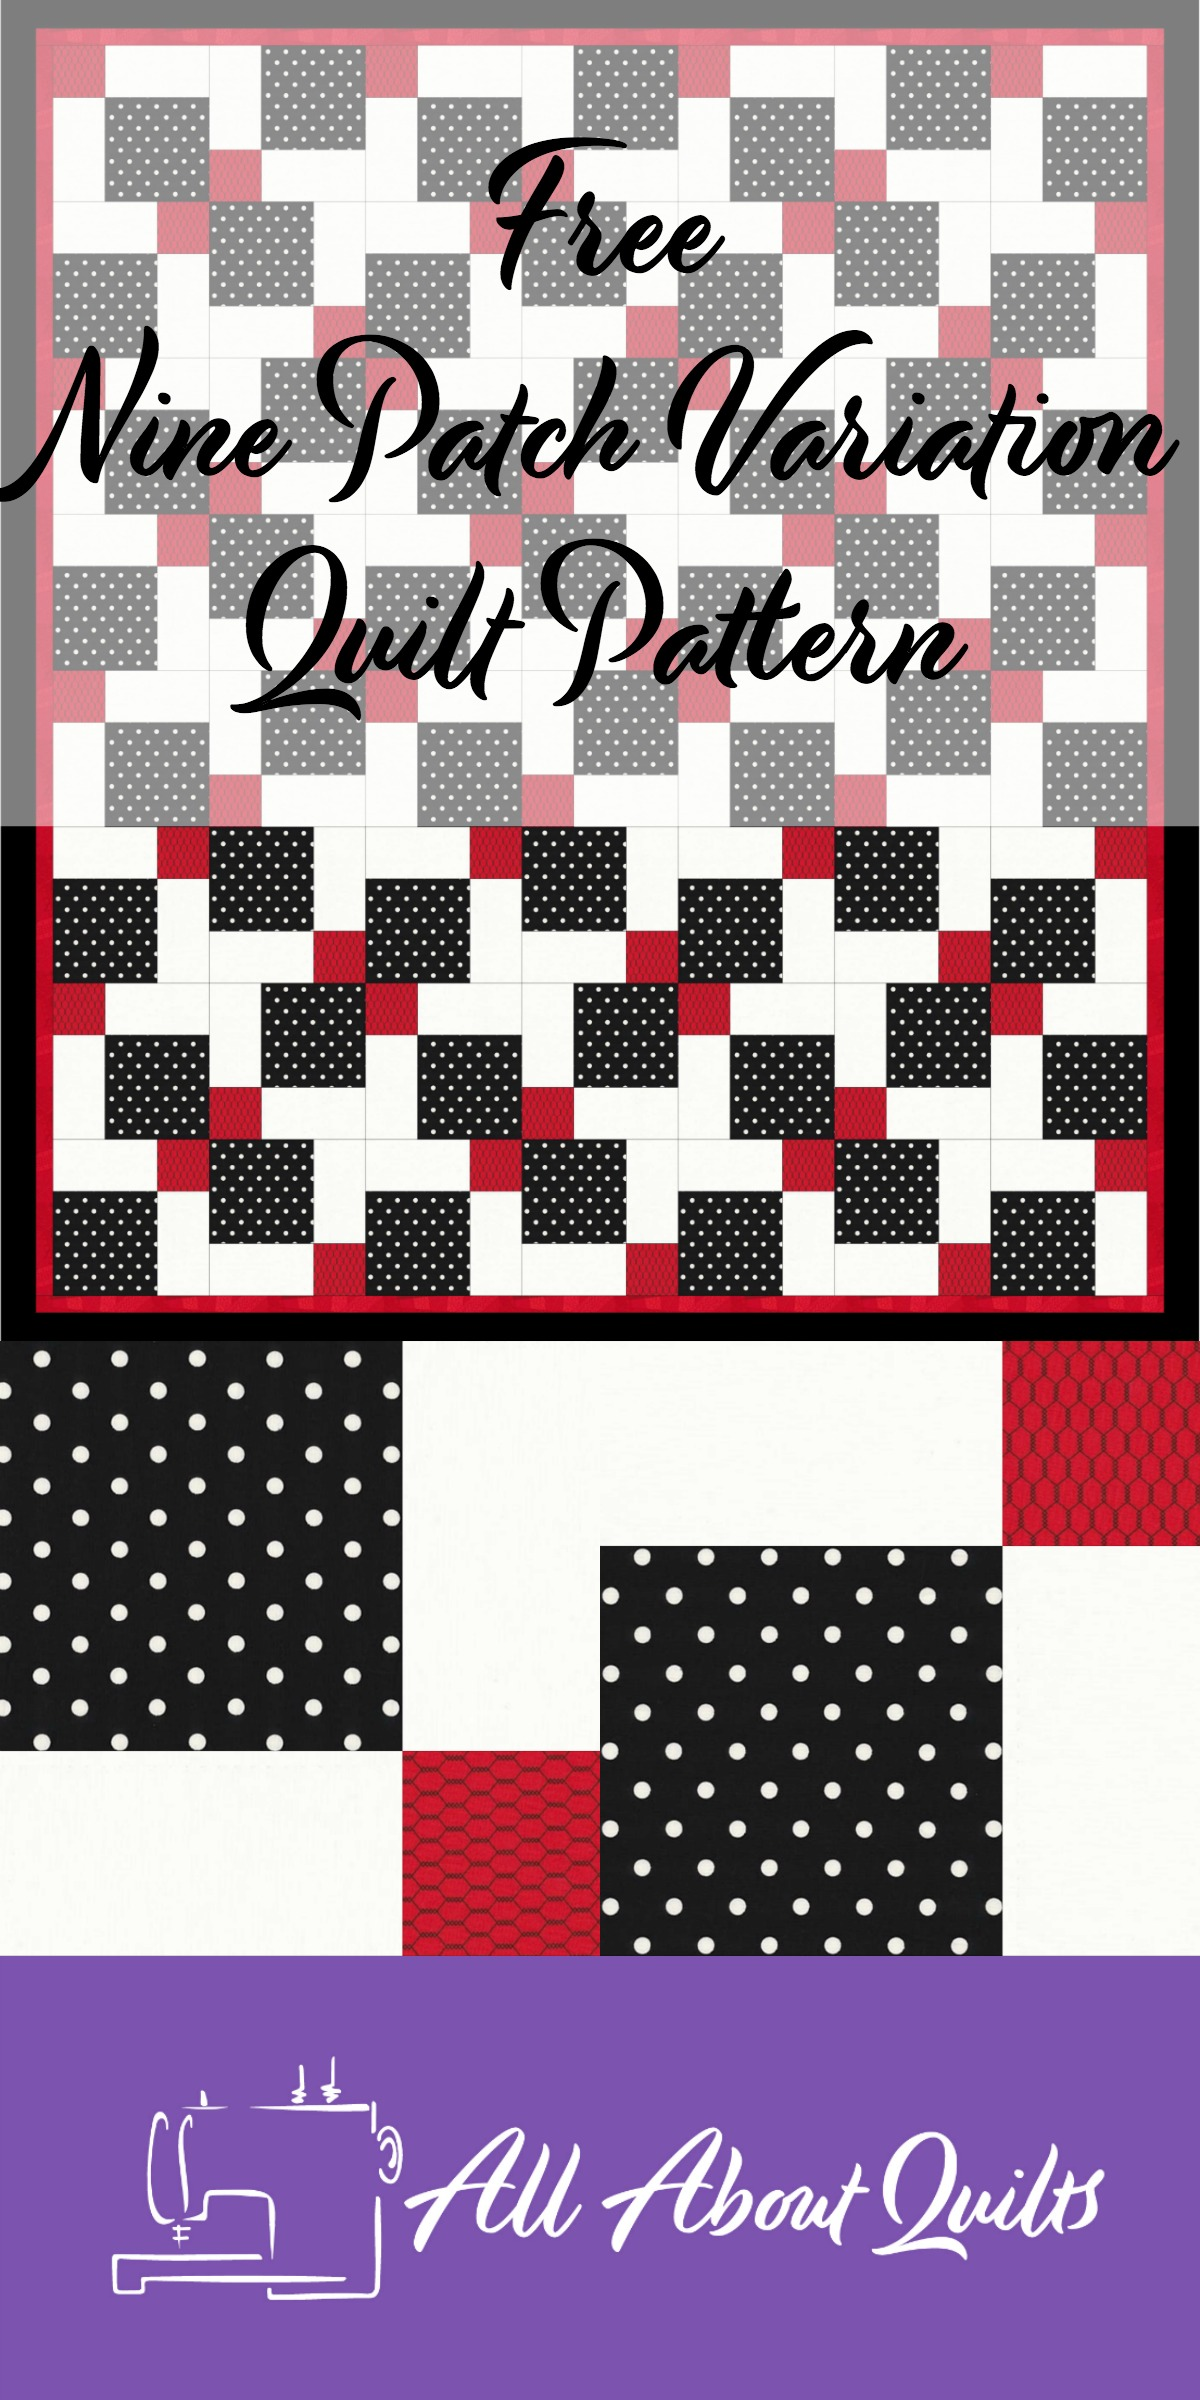 Free Nine Patch Variation quilt pattern